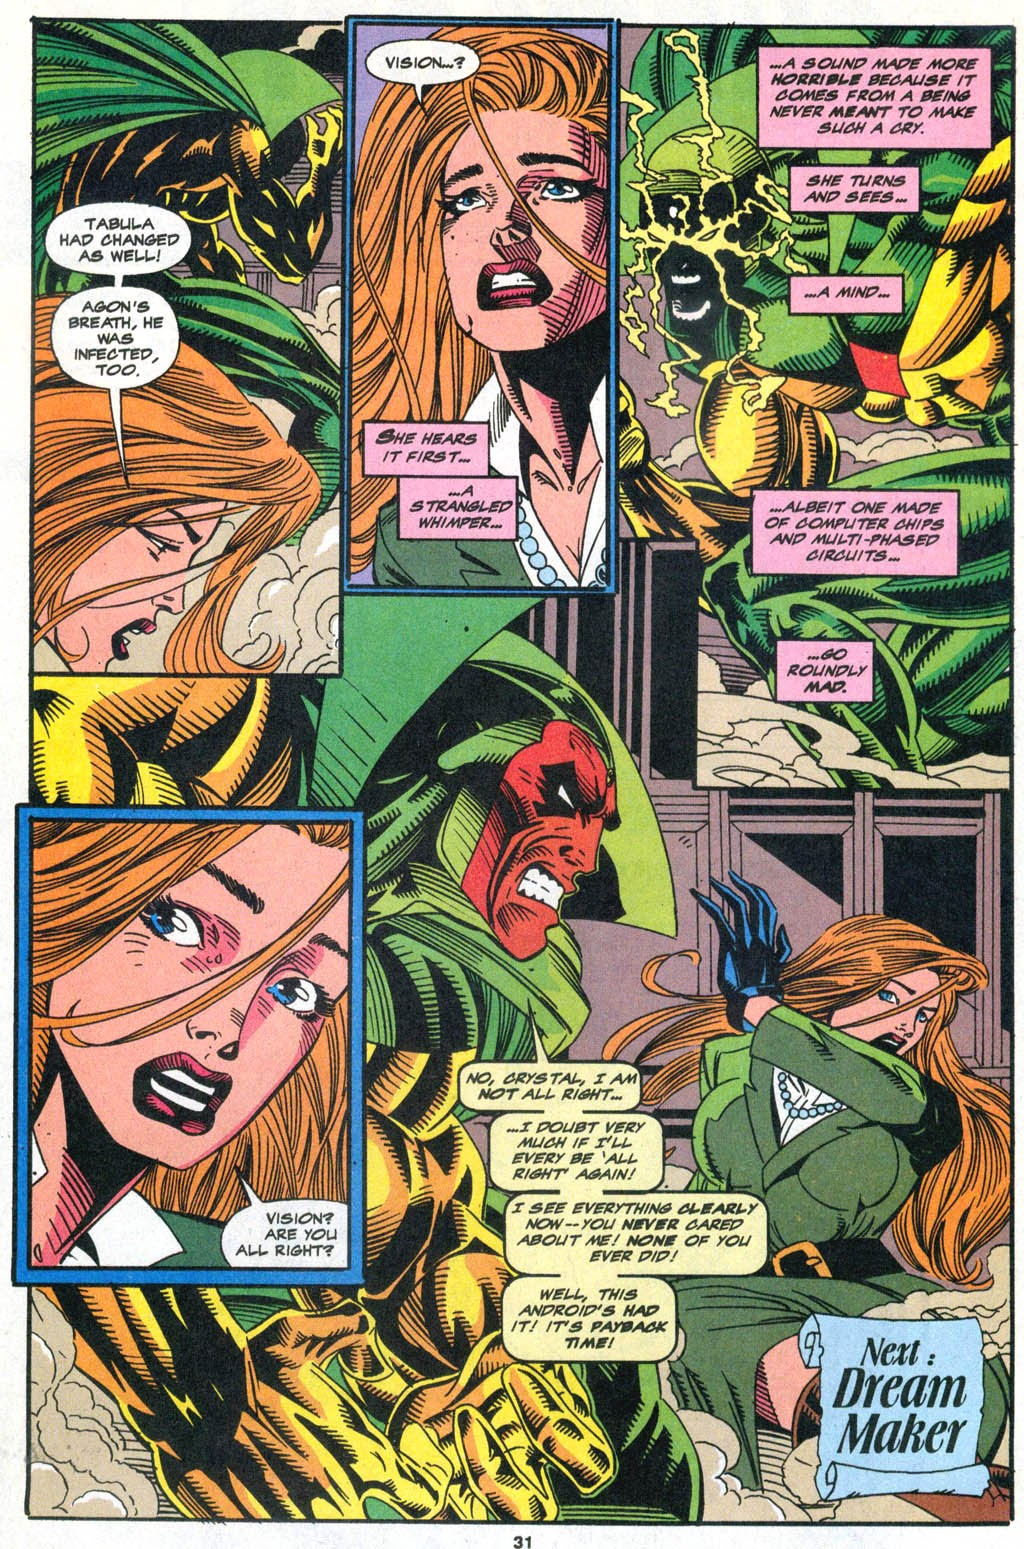 Read online The Vision comic -  Issue #2 - 24